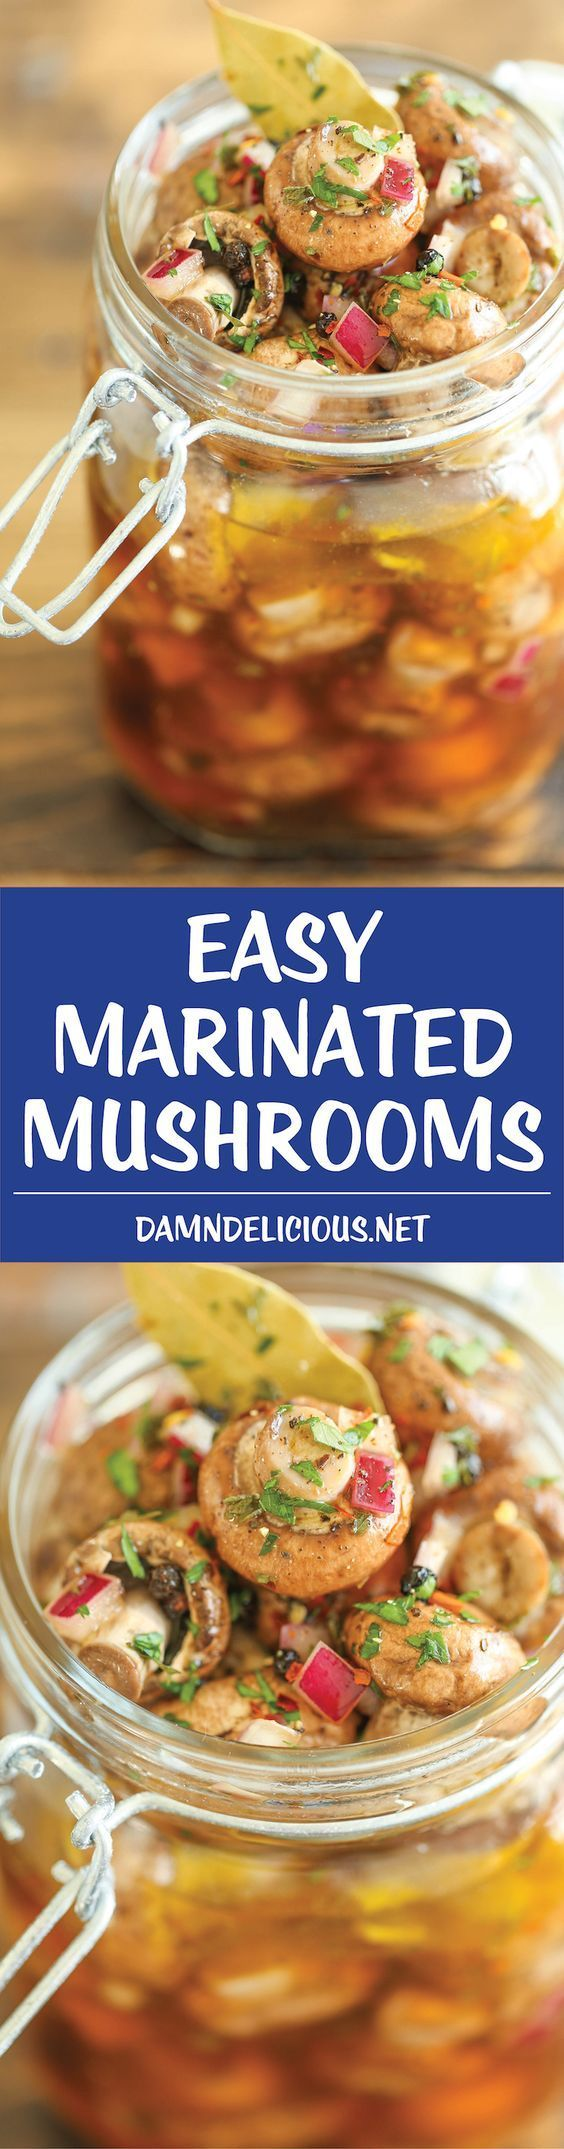 Easy Marinated Mushrooms - Quick, no-fuss with 10 min prep. You can even make these the night before! Perfect to feed a large crowd, and so irresistible!